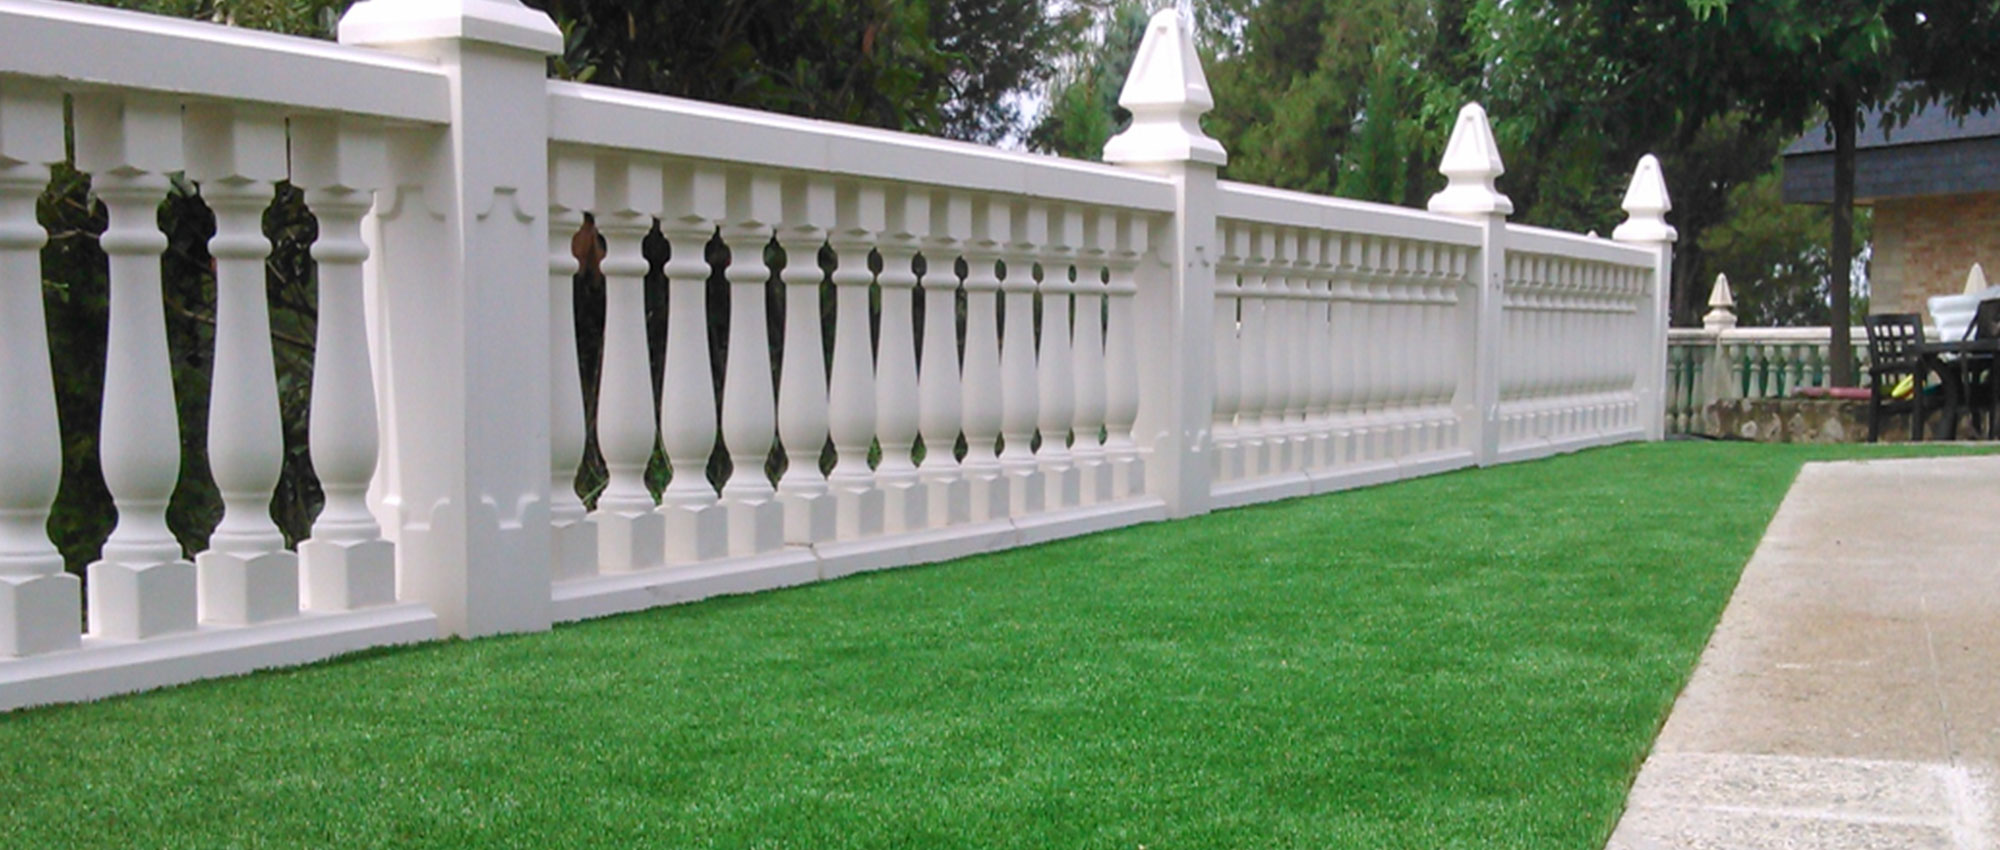 artificial grass for roof garden, balcony or terrace